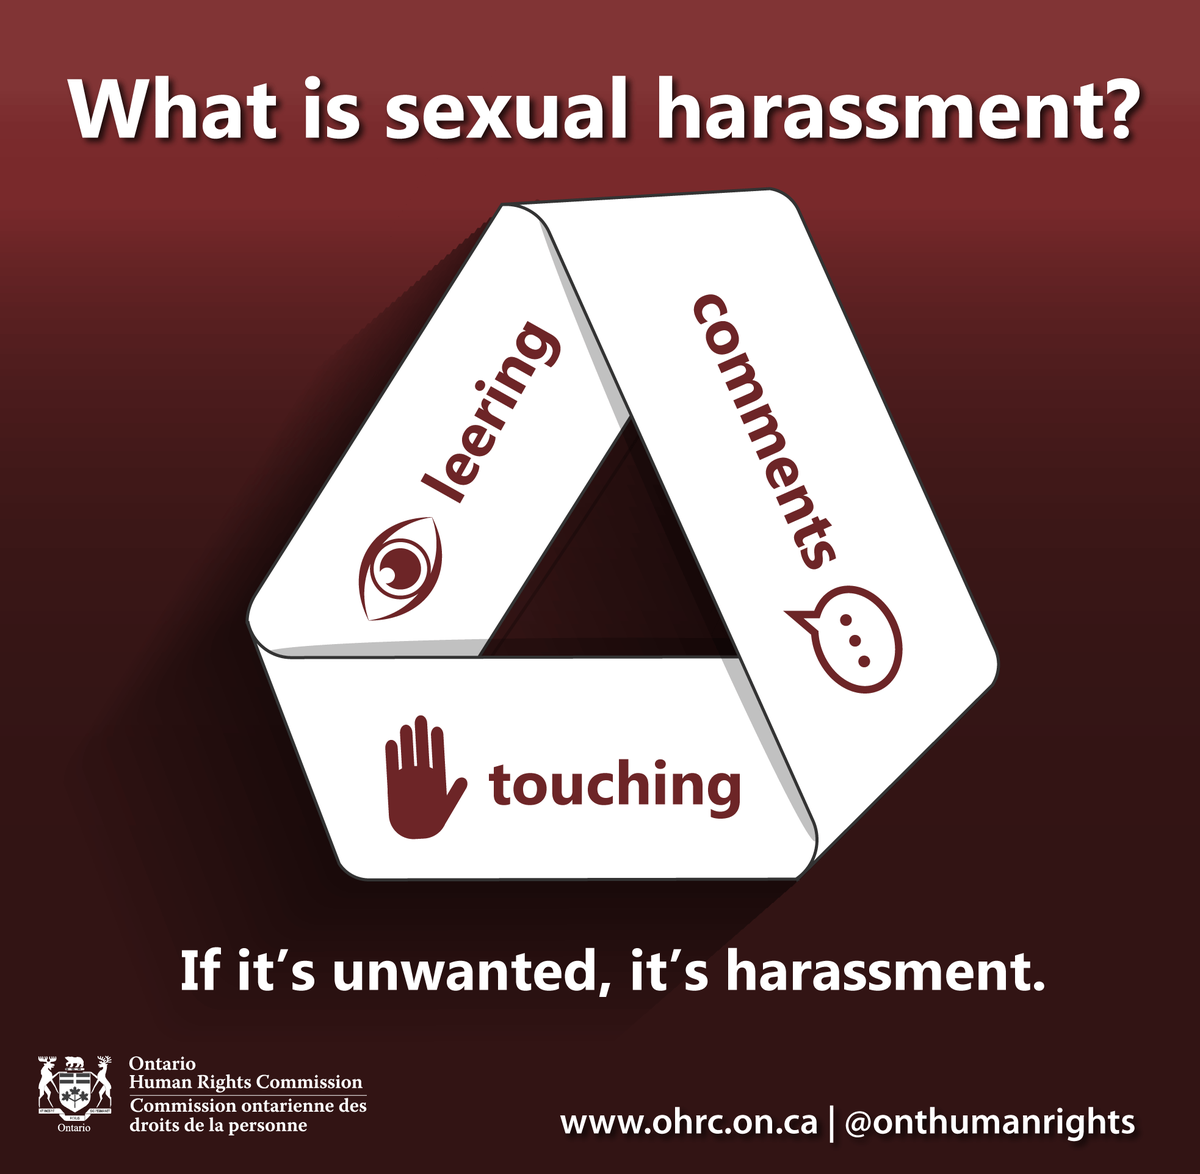 'If it's unwanted, it's harassment' image